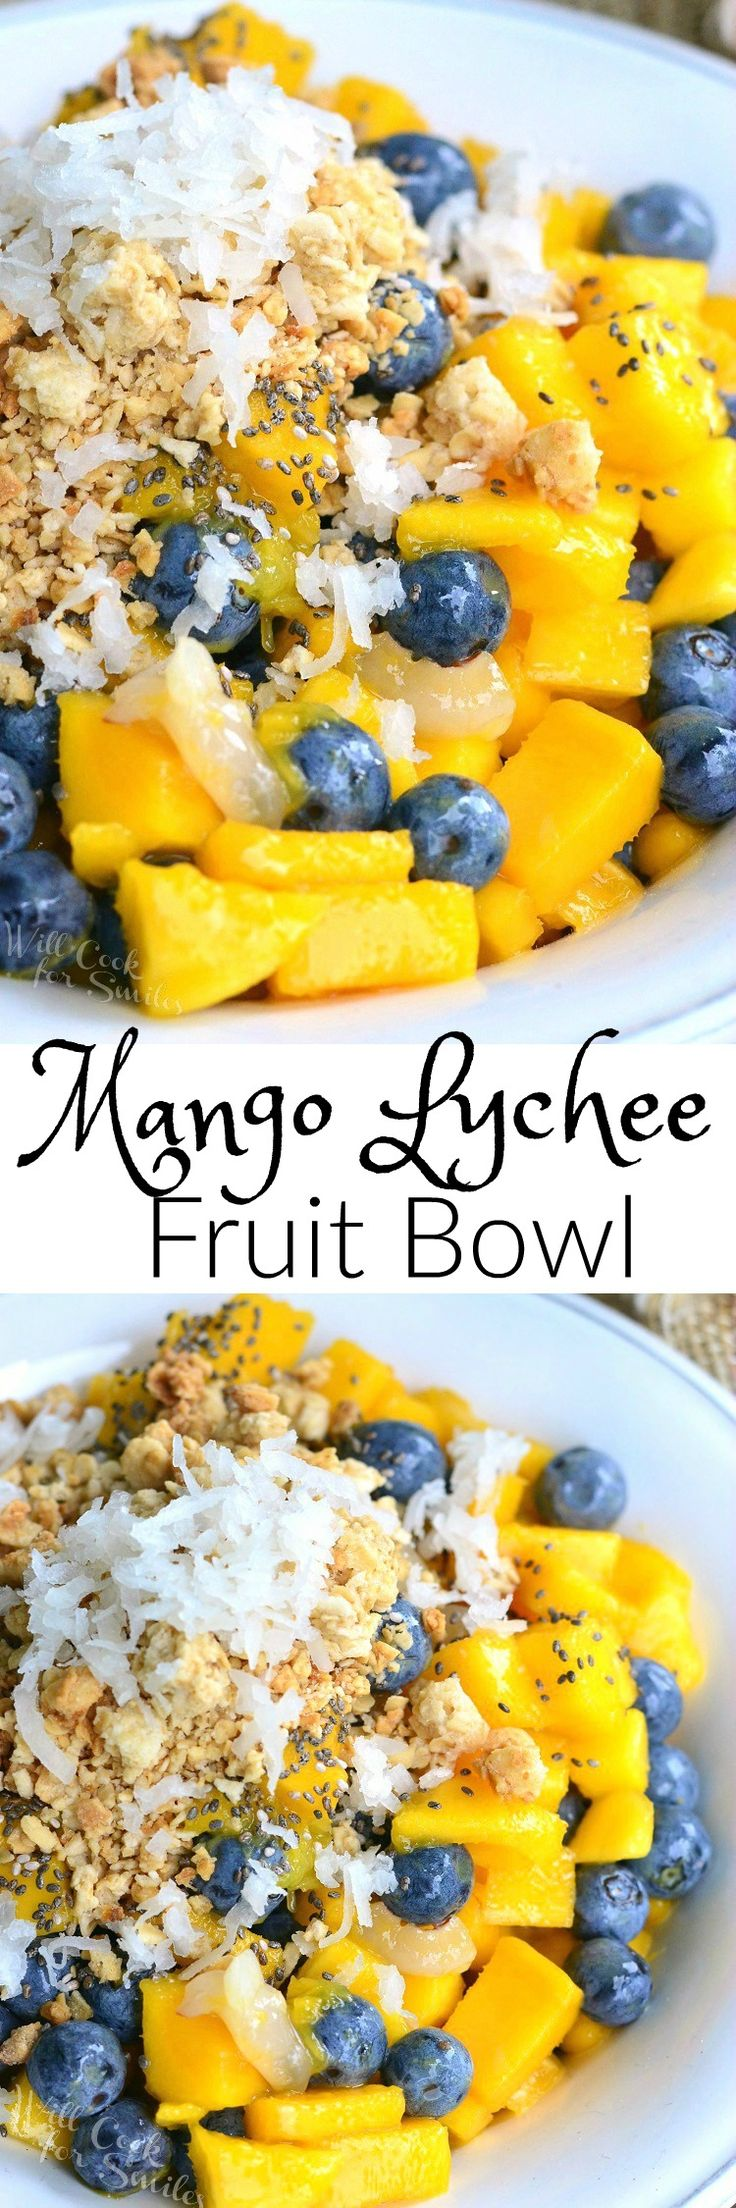 Mango Lychee and Blueberry Fruit Bowl. Refreshing summer treat that's full of delicate, sweet flavors and a little crunch